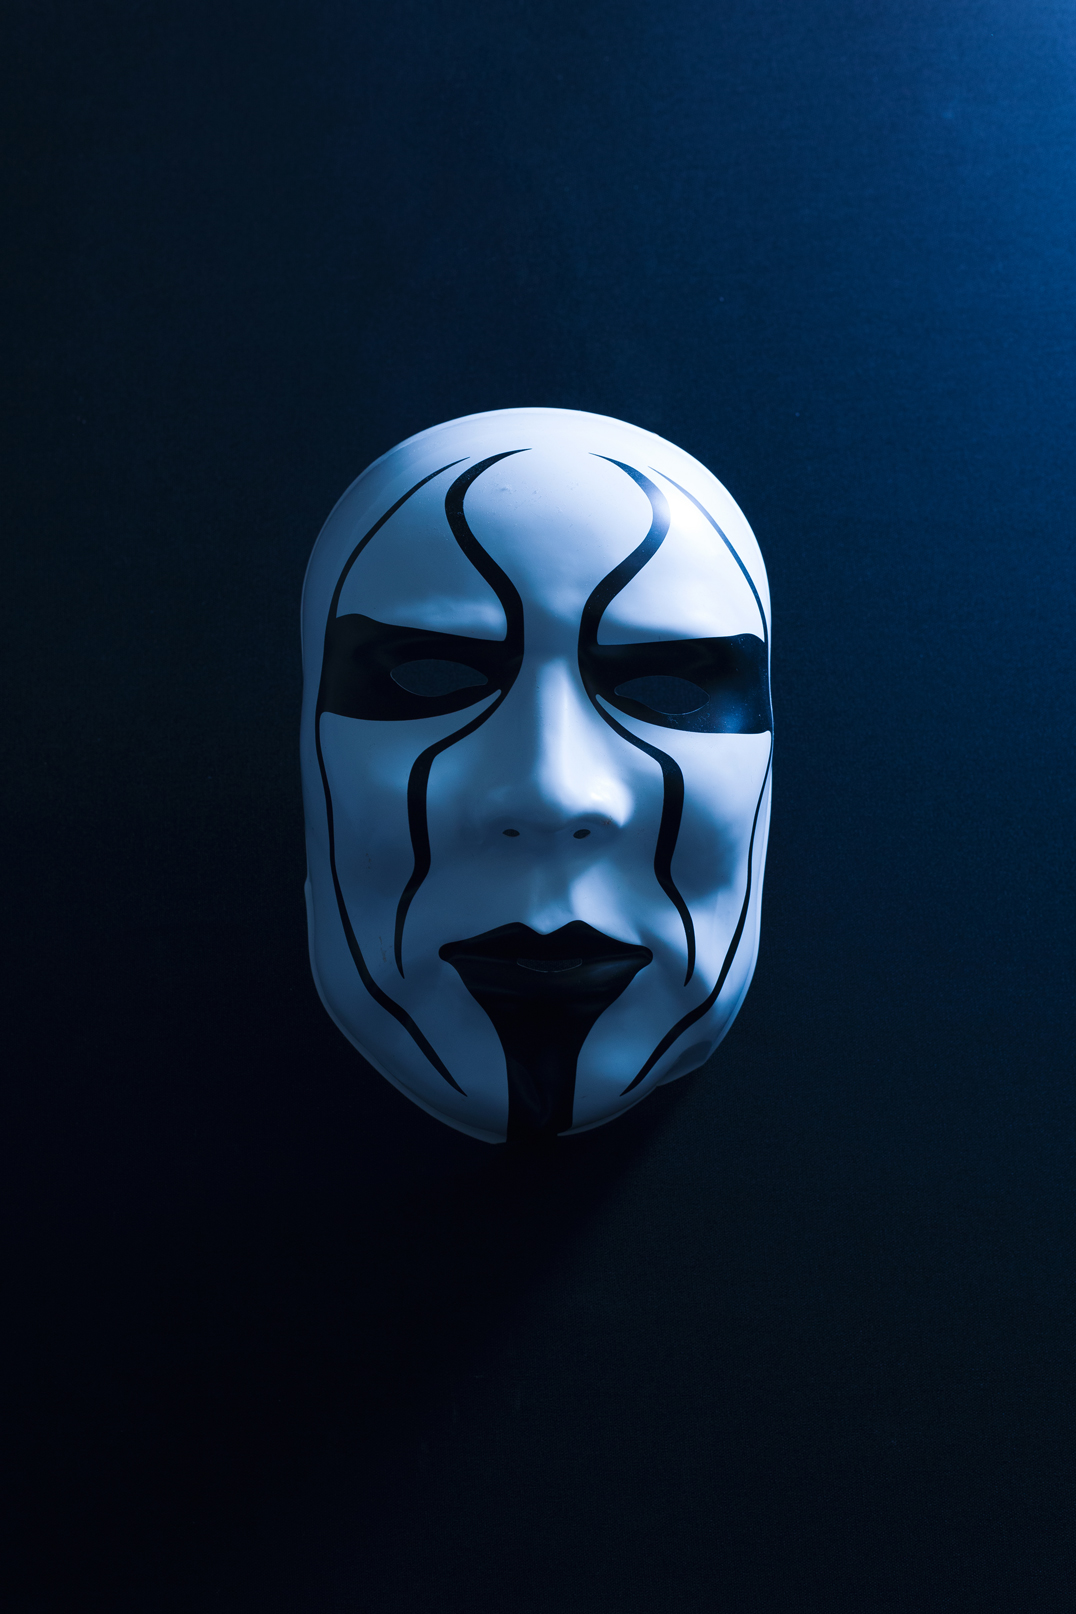 sting-mask-small.jpg